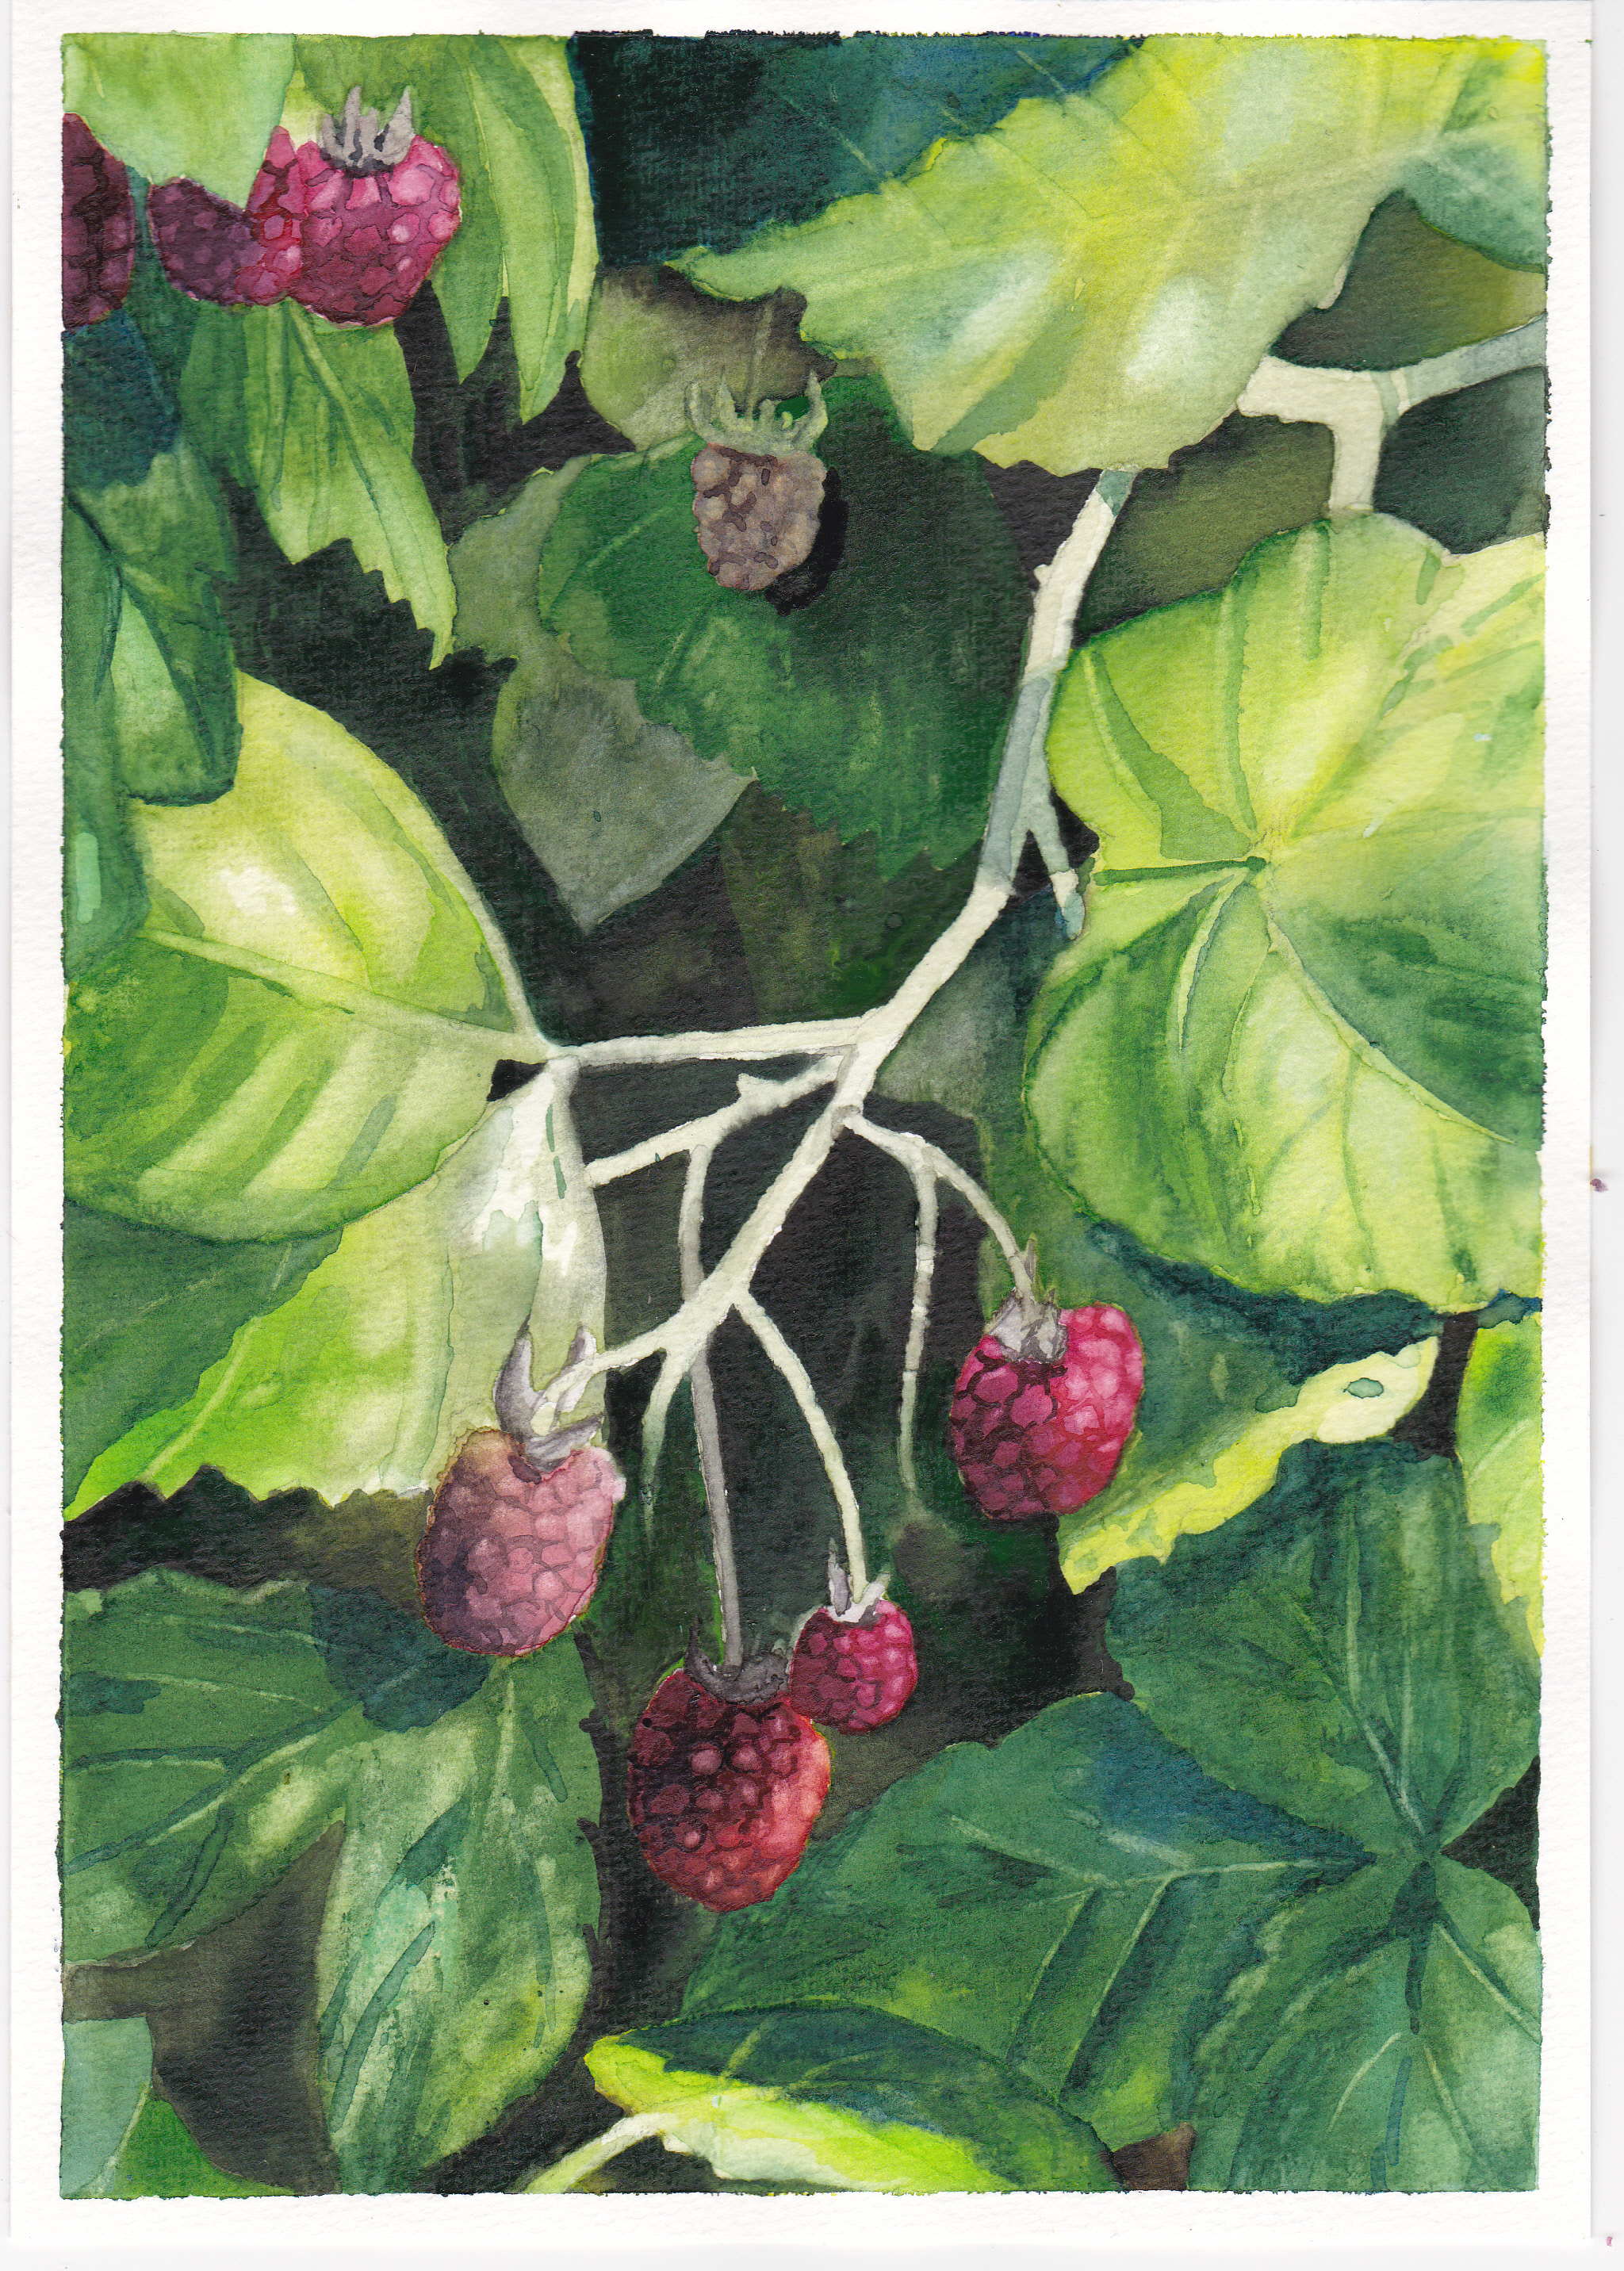 Himbeeren/ Raspberries